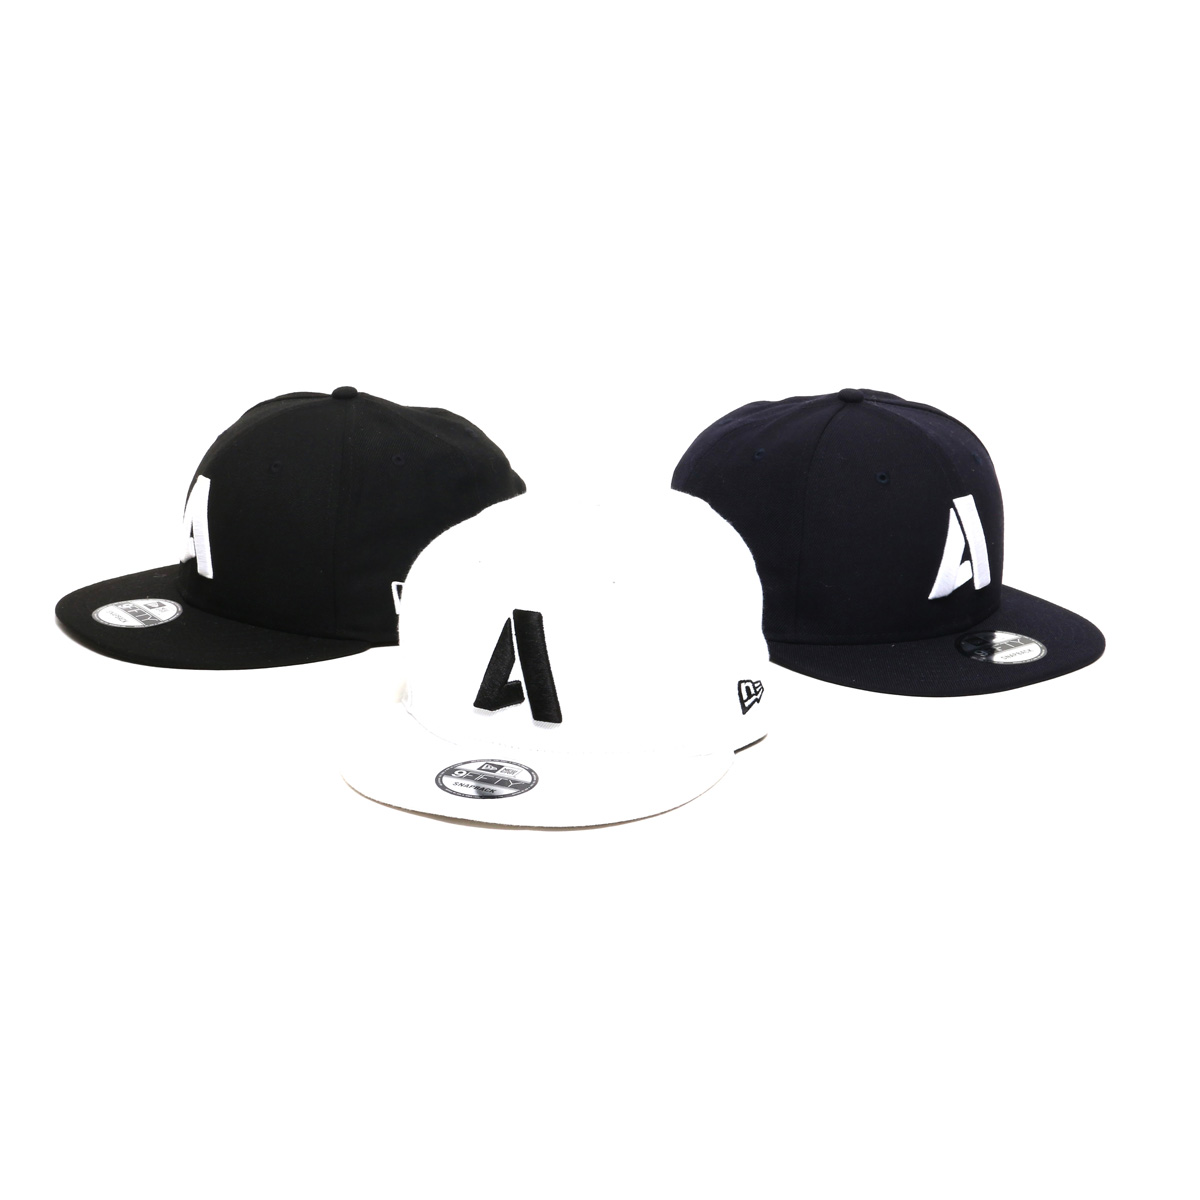 NEW ERA x ATMOS LAB 9FIFTY SNAP BACK -A-